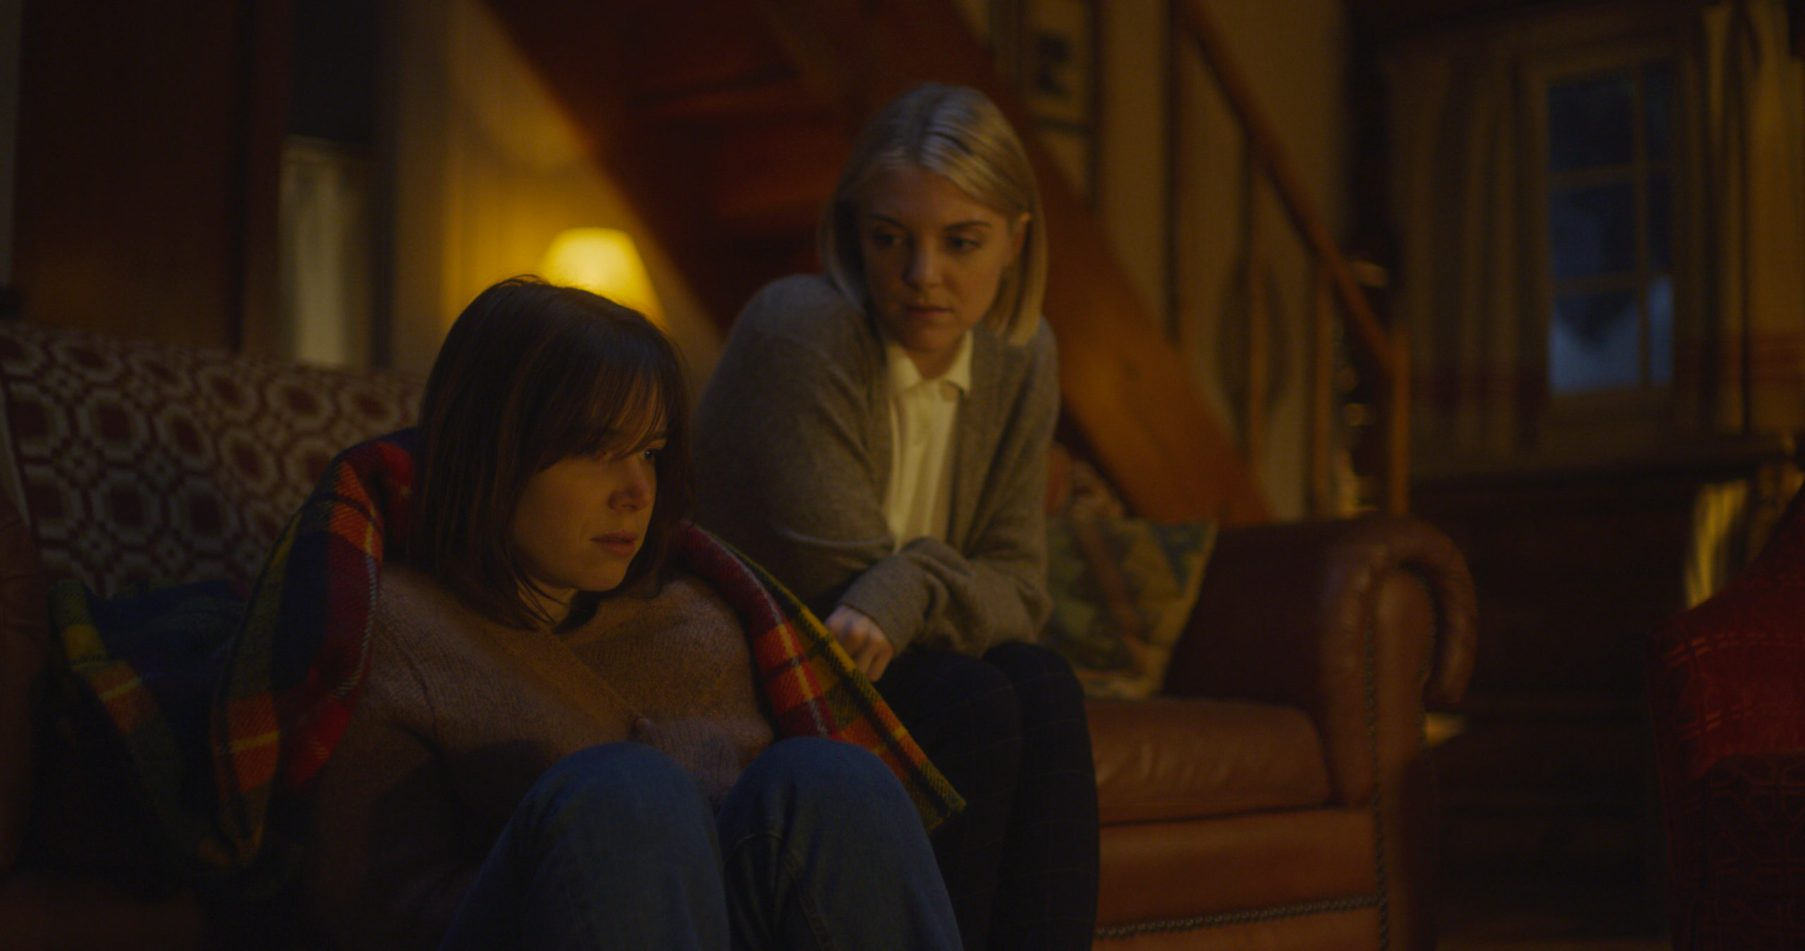 Emily comforts Rowan by the fireplace.